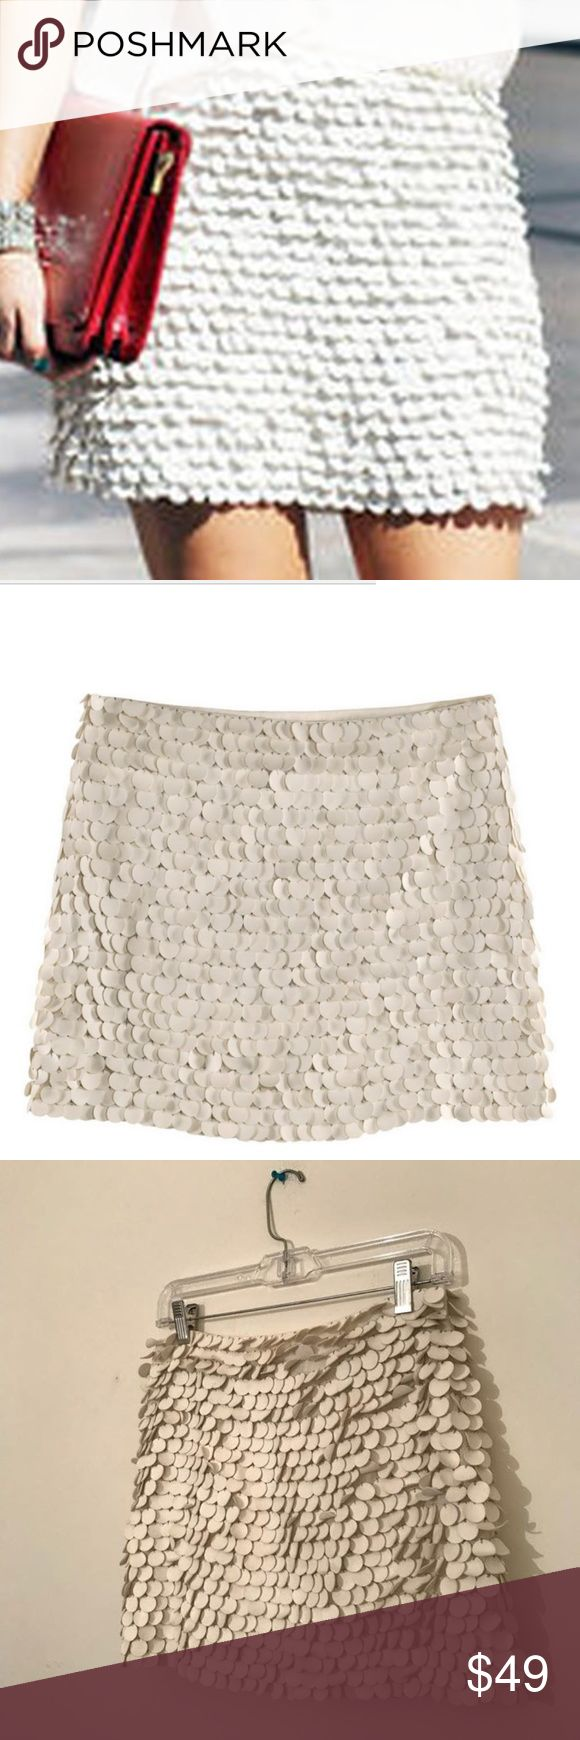 Zara Leather Sequin White Mini Skirt SS 12 Zara Leather Sequin White Mini Skirt SS 12 Zara woman spring summer 2012 collection  Mini skirt with white circular details throughout  It is heavy and great quality  Good condition  Pair with a darker top for a nice contrast  Perfect for spring and summer- especially for holidays  Size S Zara Skirts Mini